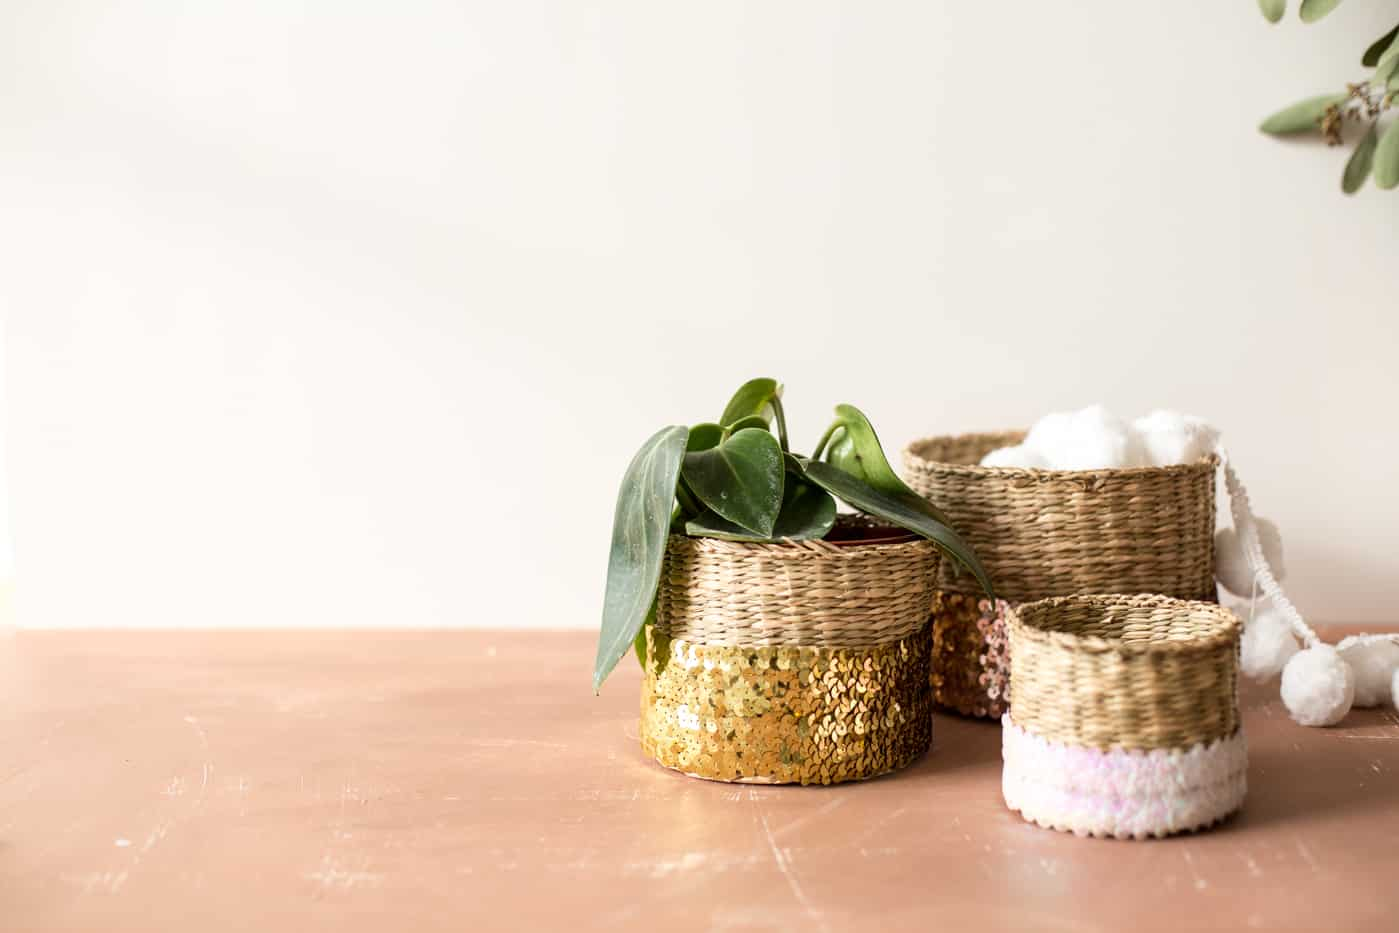 Sequin wrapped baskets